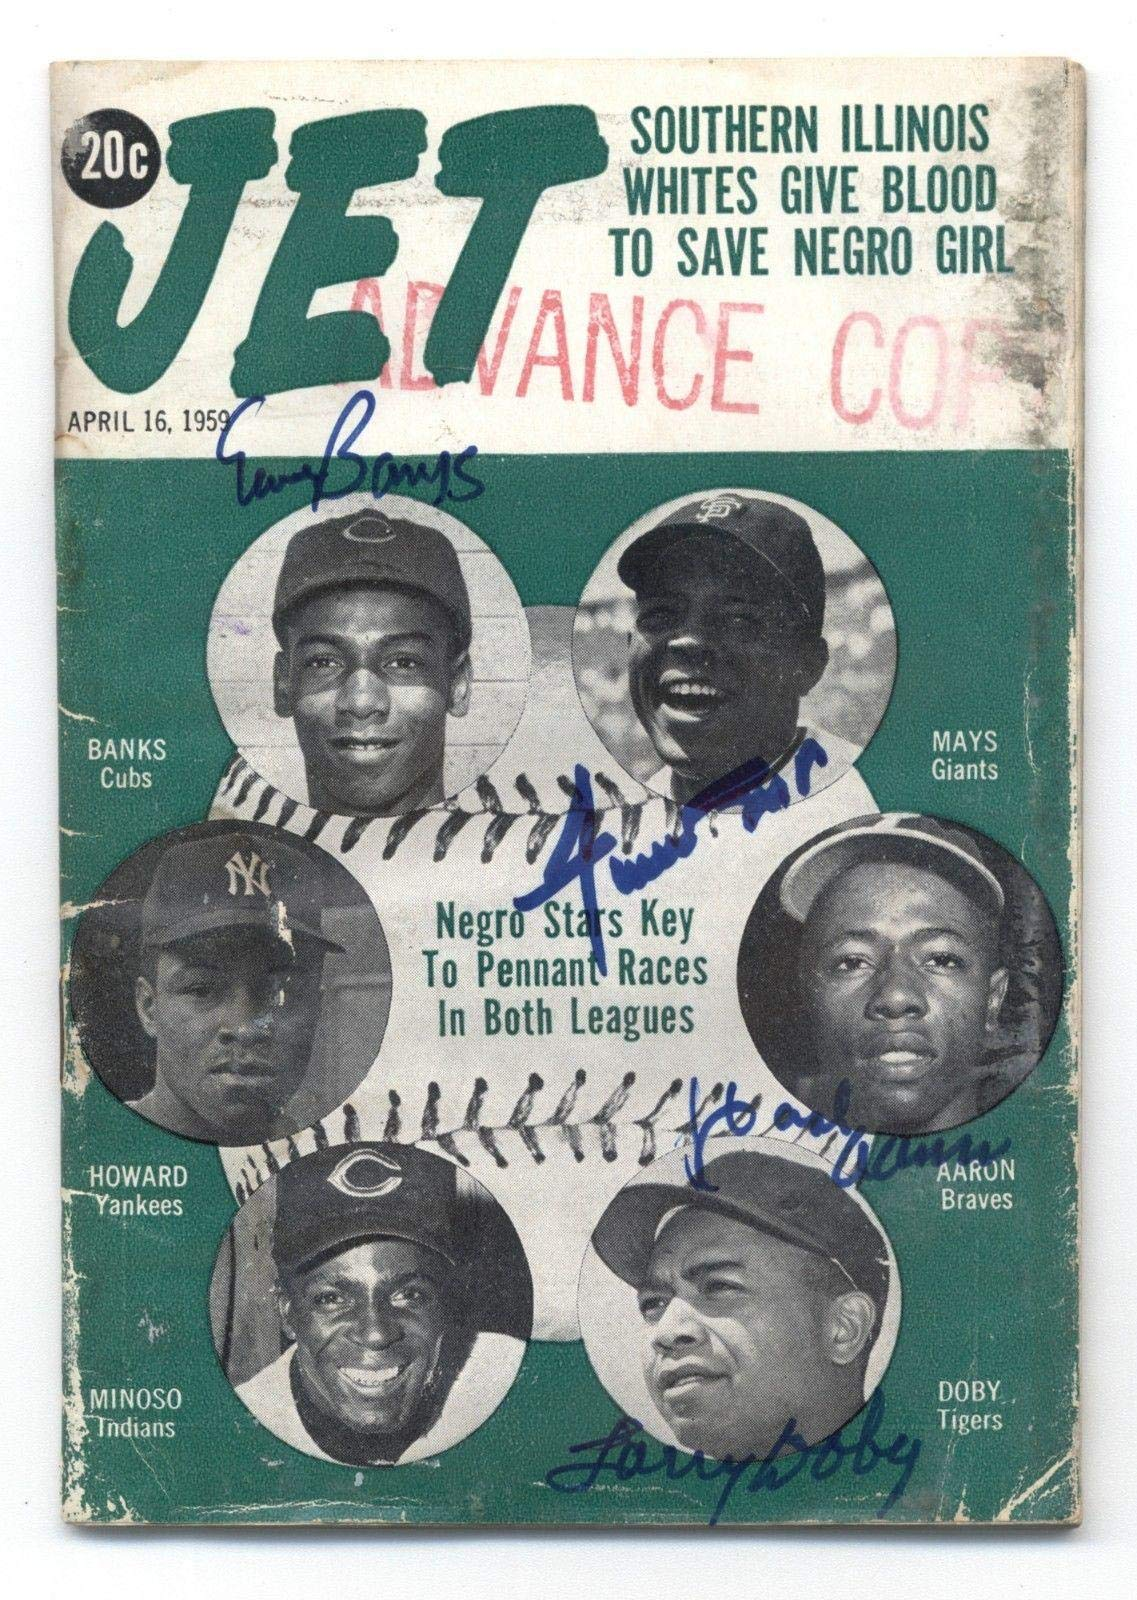 Willie Mays/Ernie Banks/Hank Aaron/Larry Doby Signed 1959 Jet Magazine JSA Certified Autographed MLB Magazines